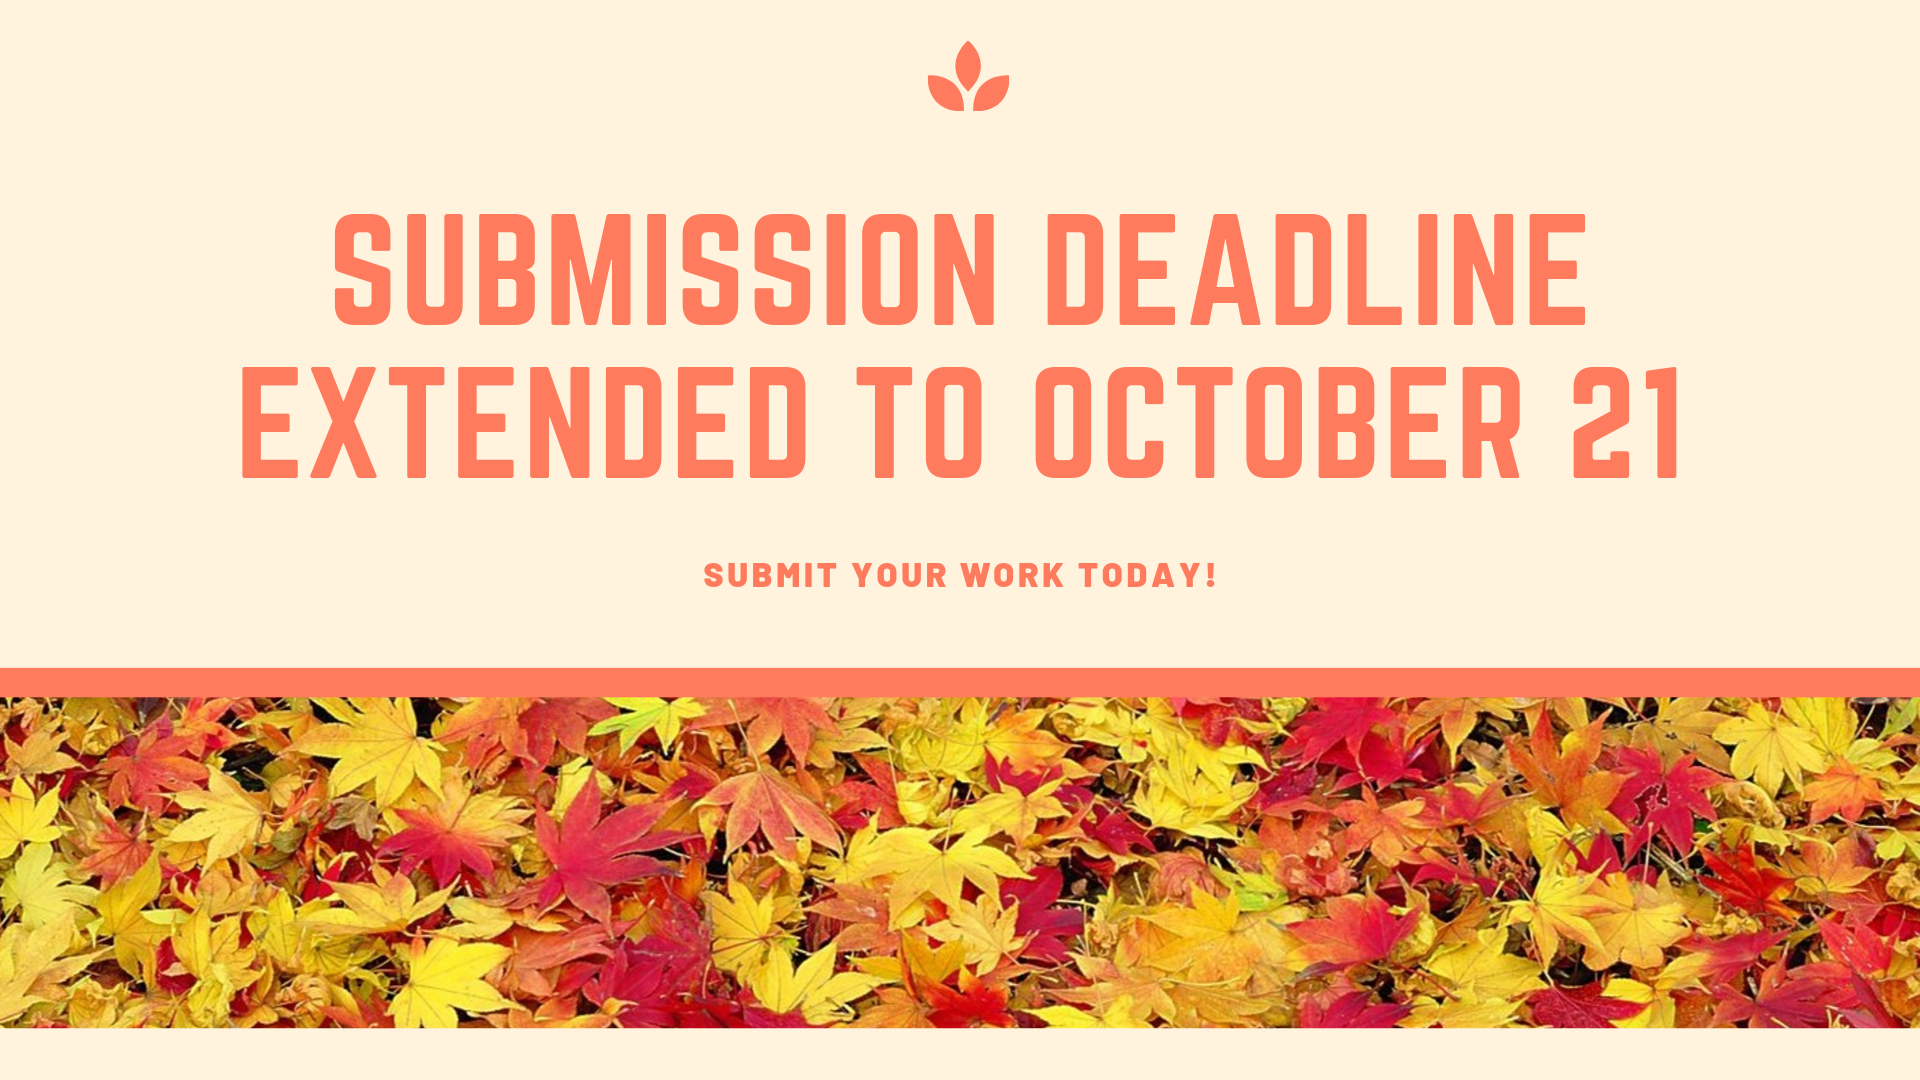 submission deadline extended to October 21. Submit your work today!